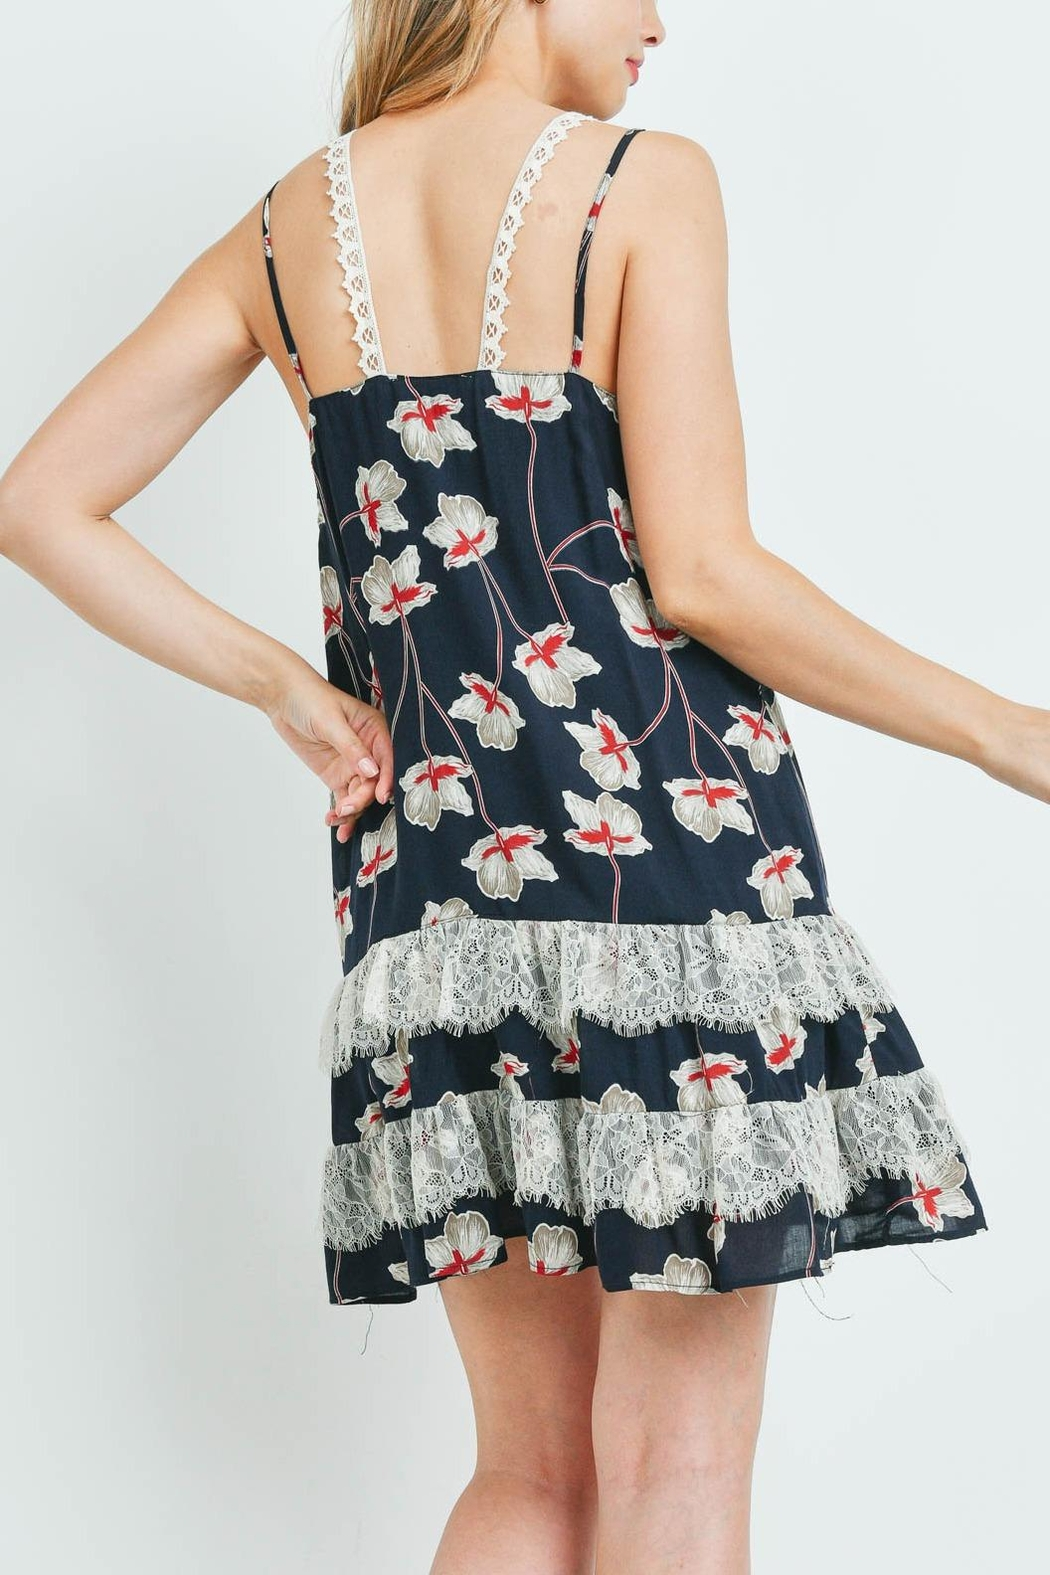 Riah Fashion Navy-With-Flower-Print-Dress - Front Full Image